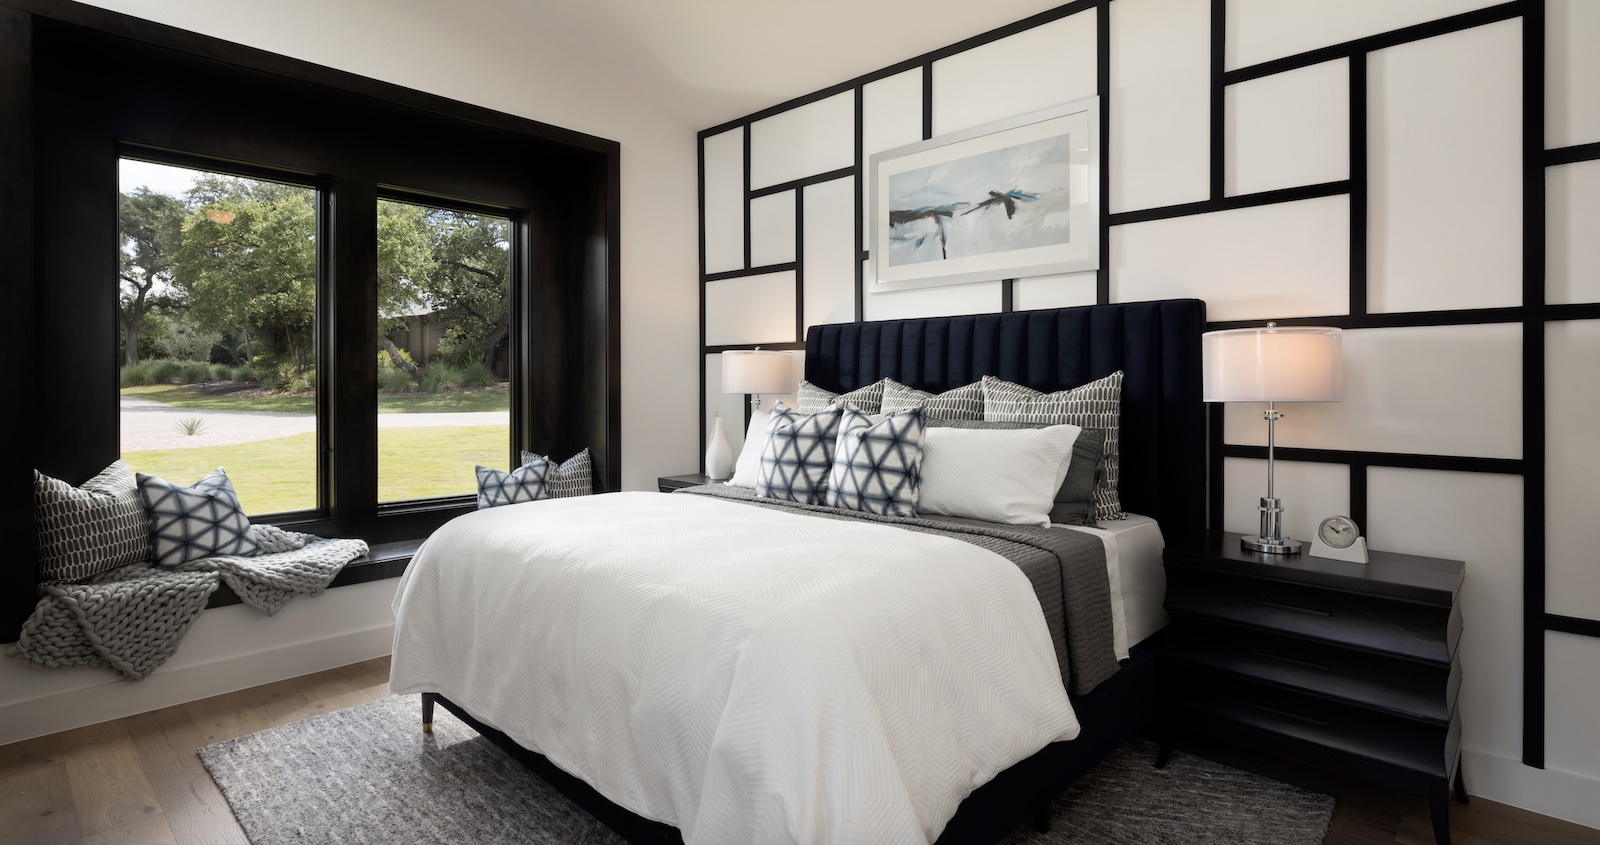 Mondrian-style black and white design in the bedroom